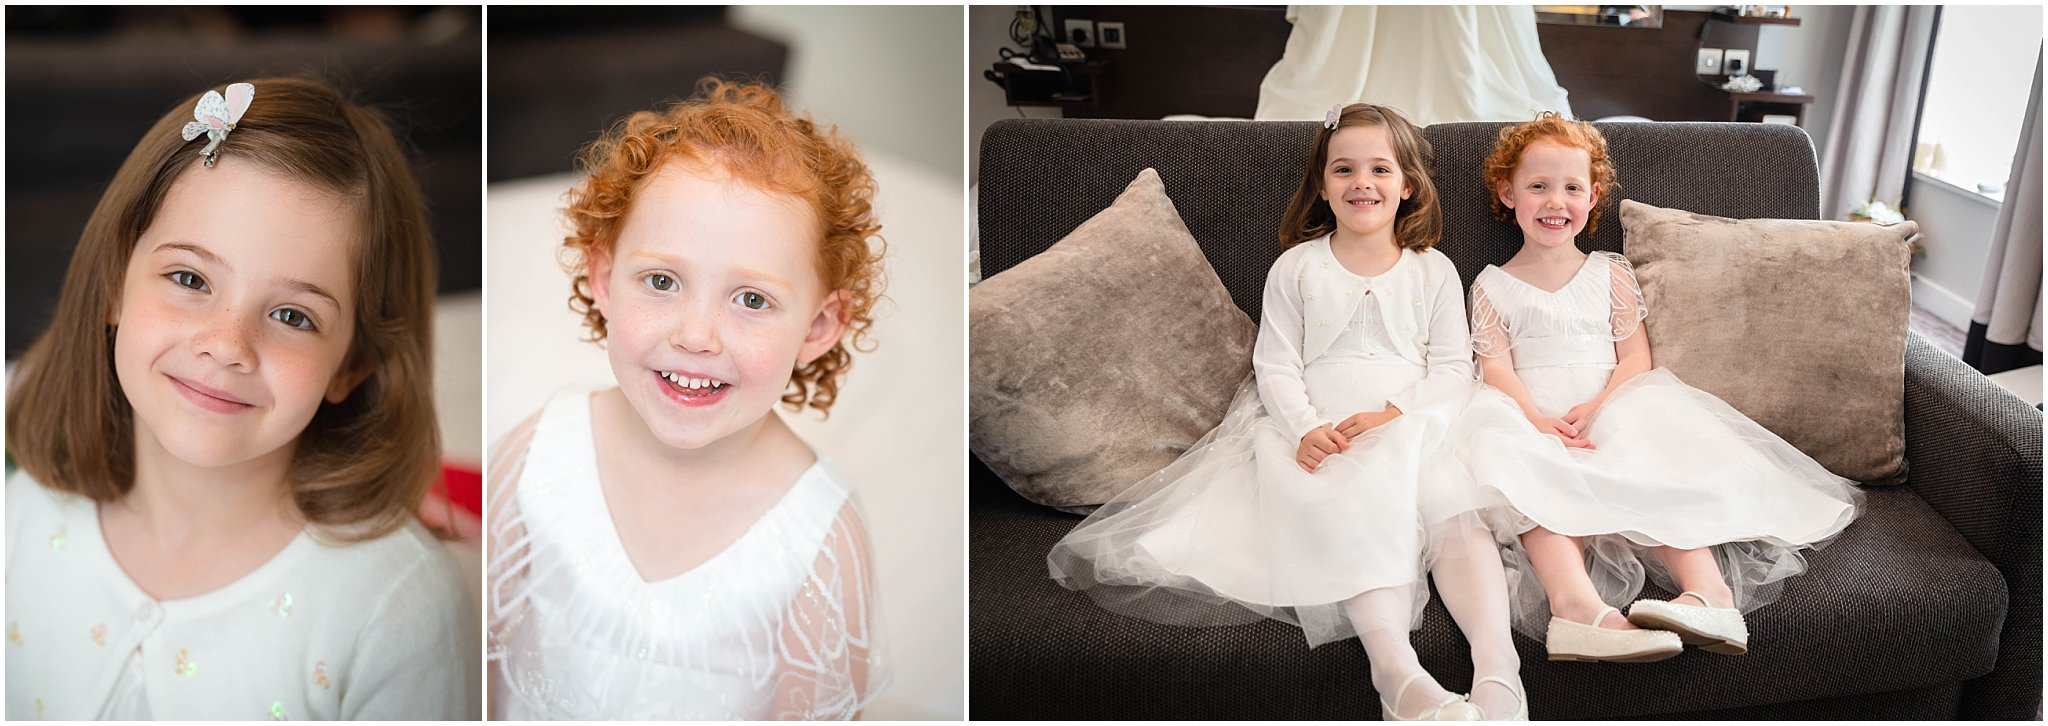 Wedding Flower Girl photos